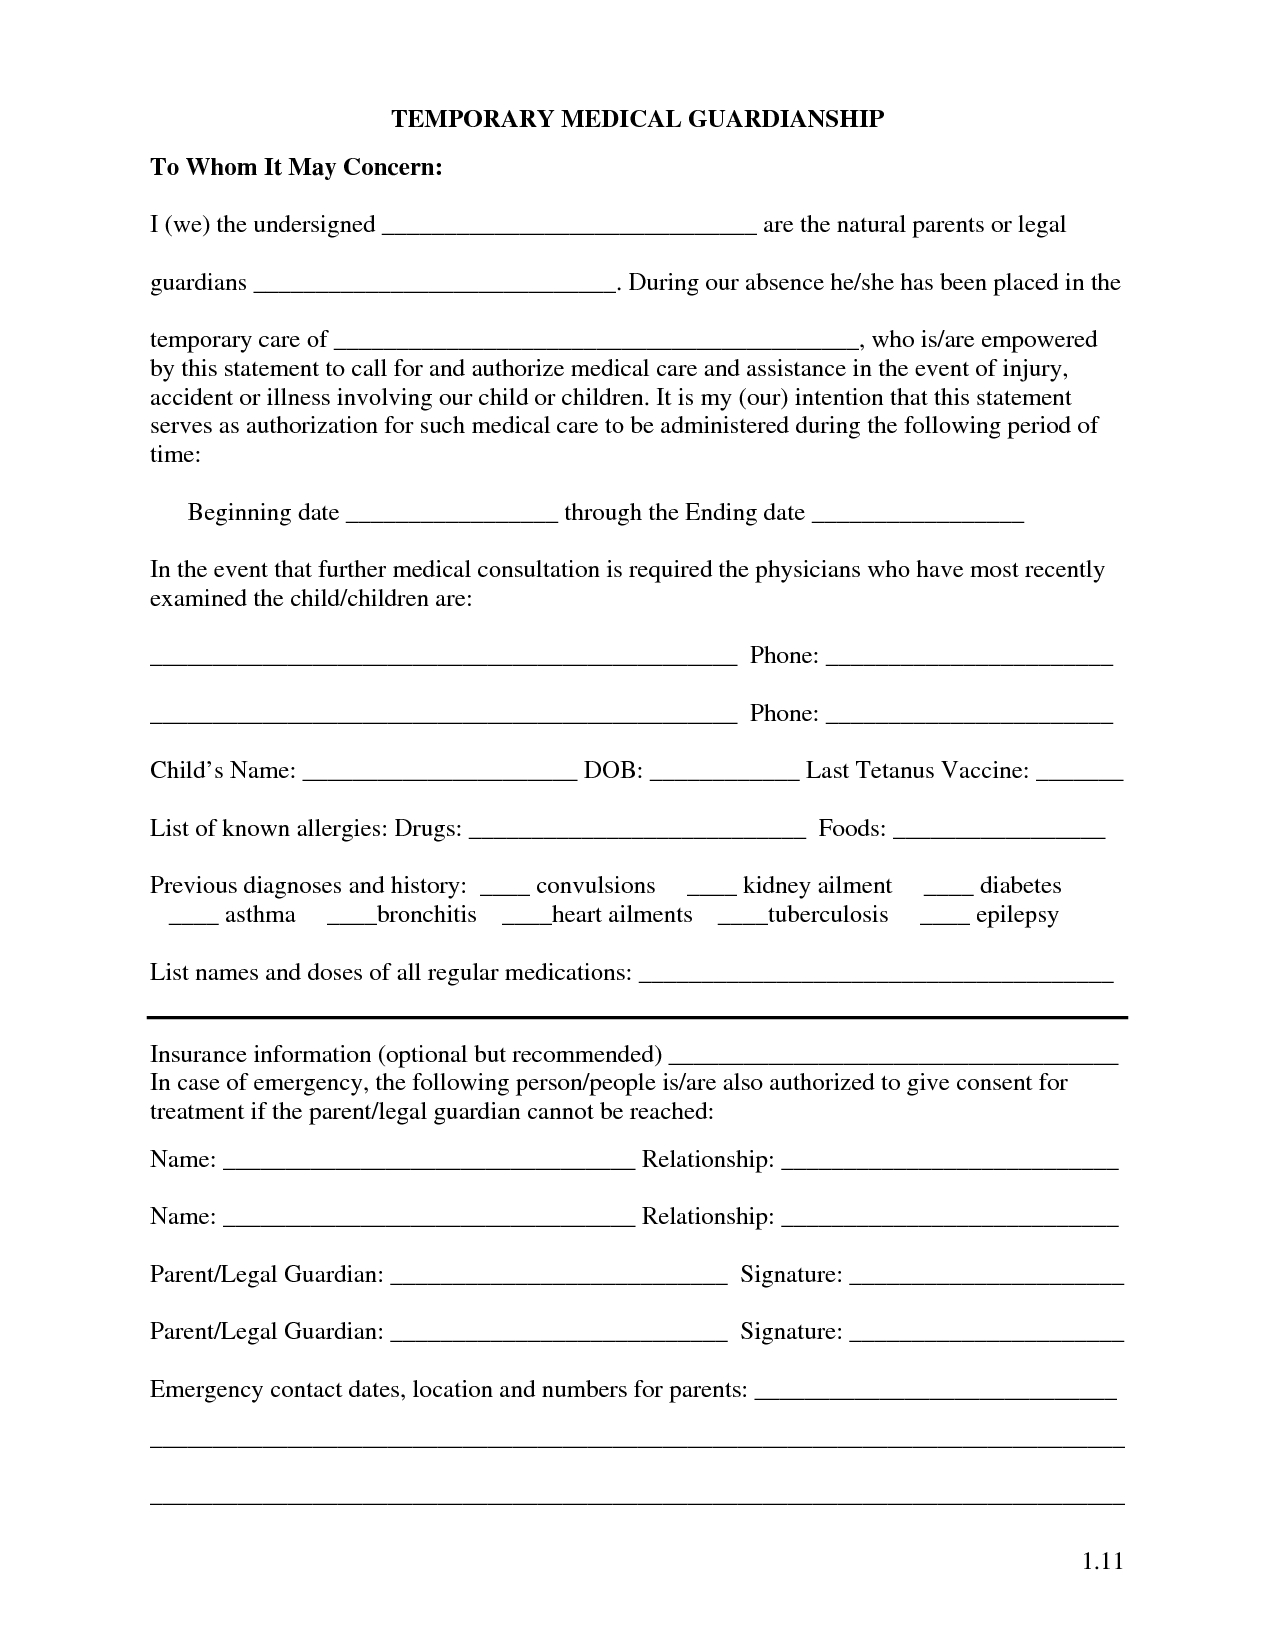 Free Printable Temporary Guardianship Forms | Forms | Child Custody - Free Printable Guardianship Forms